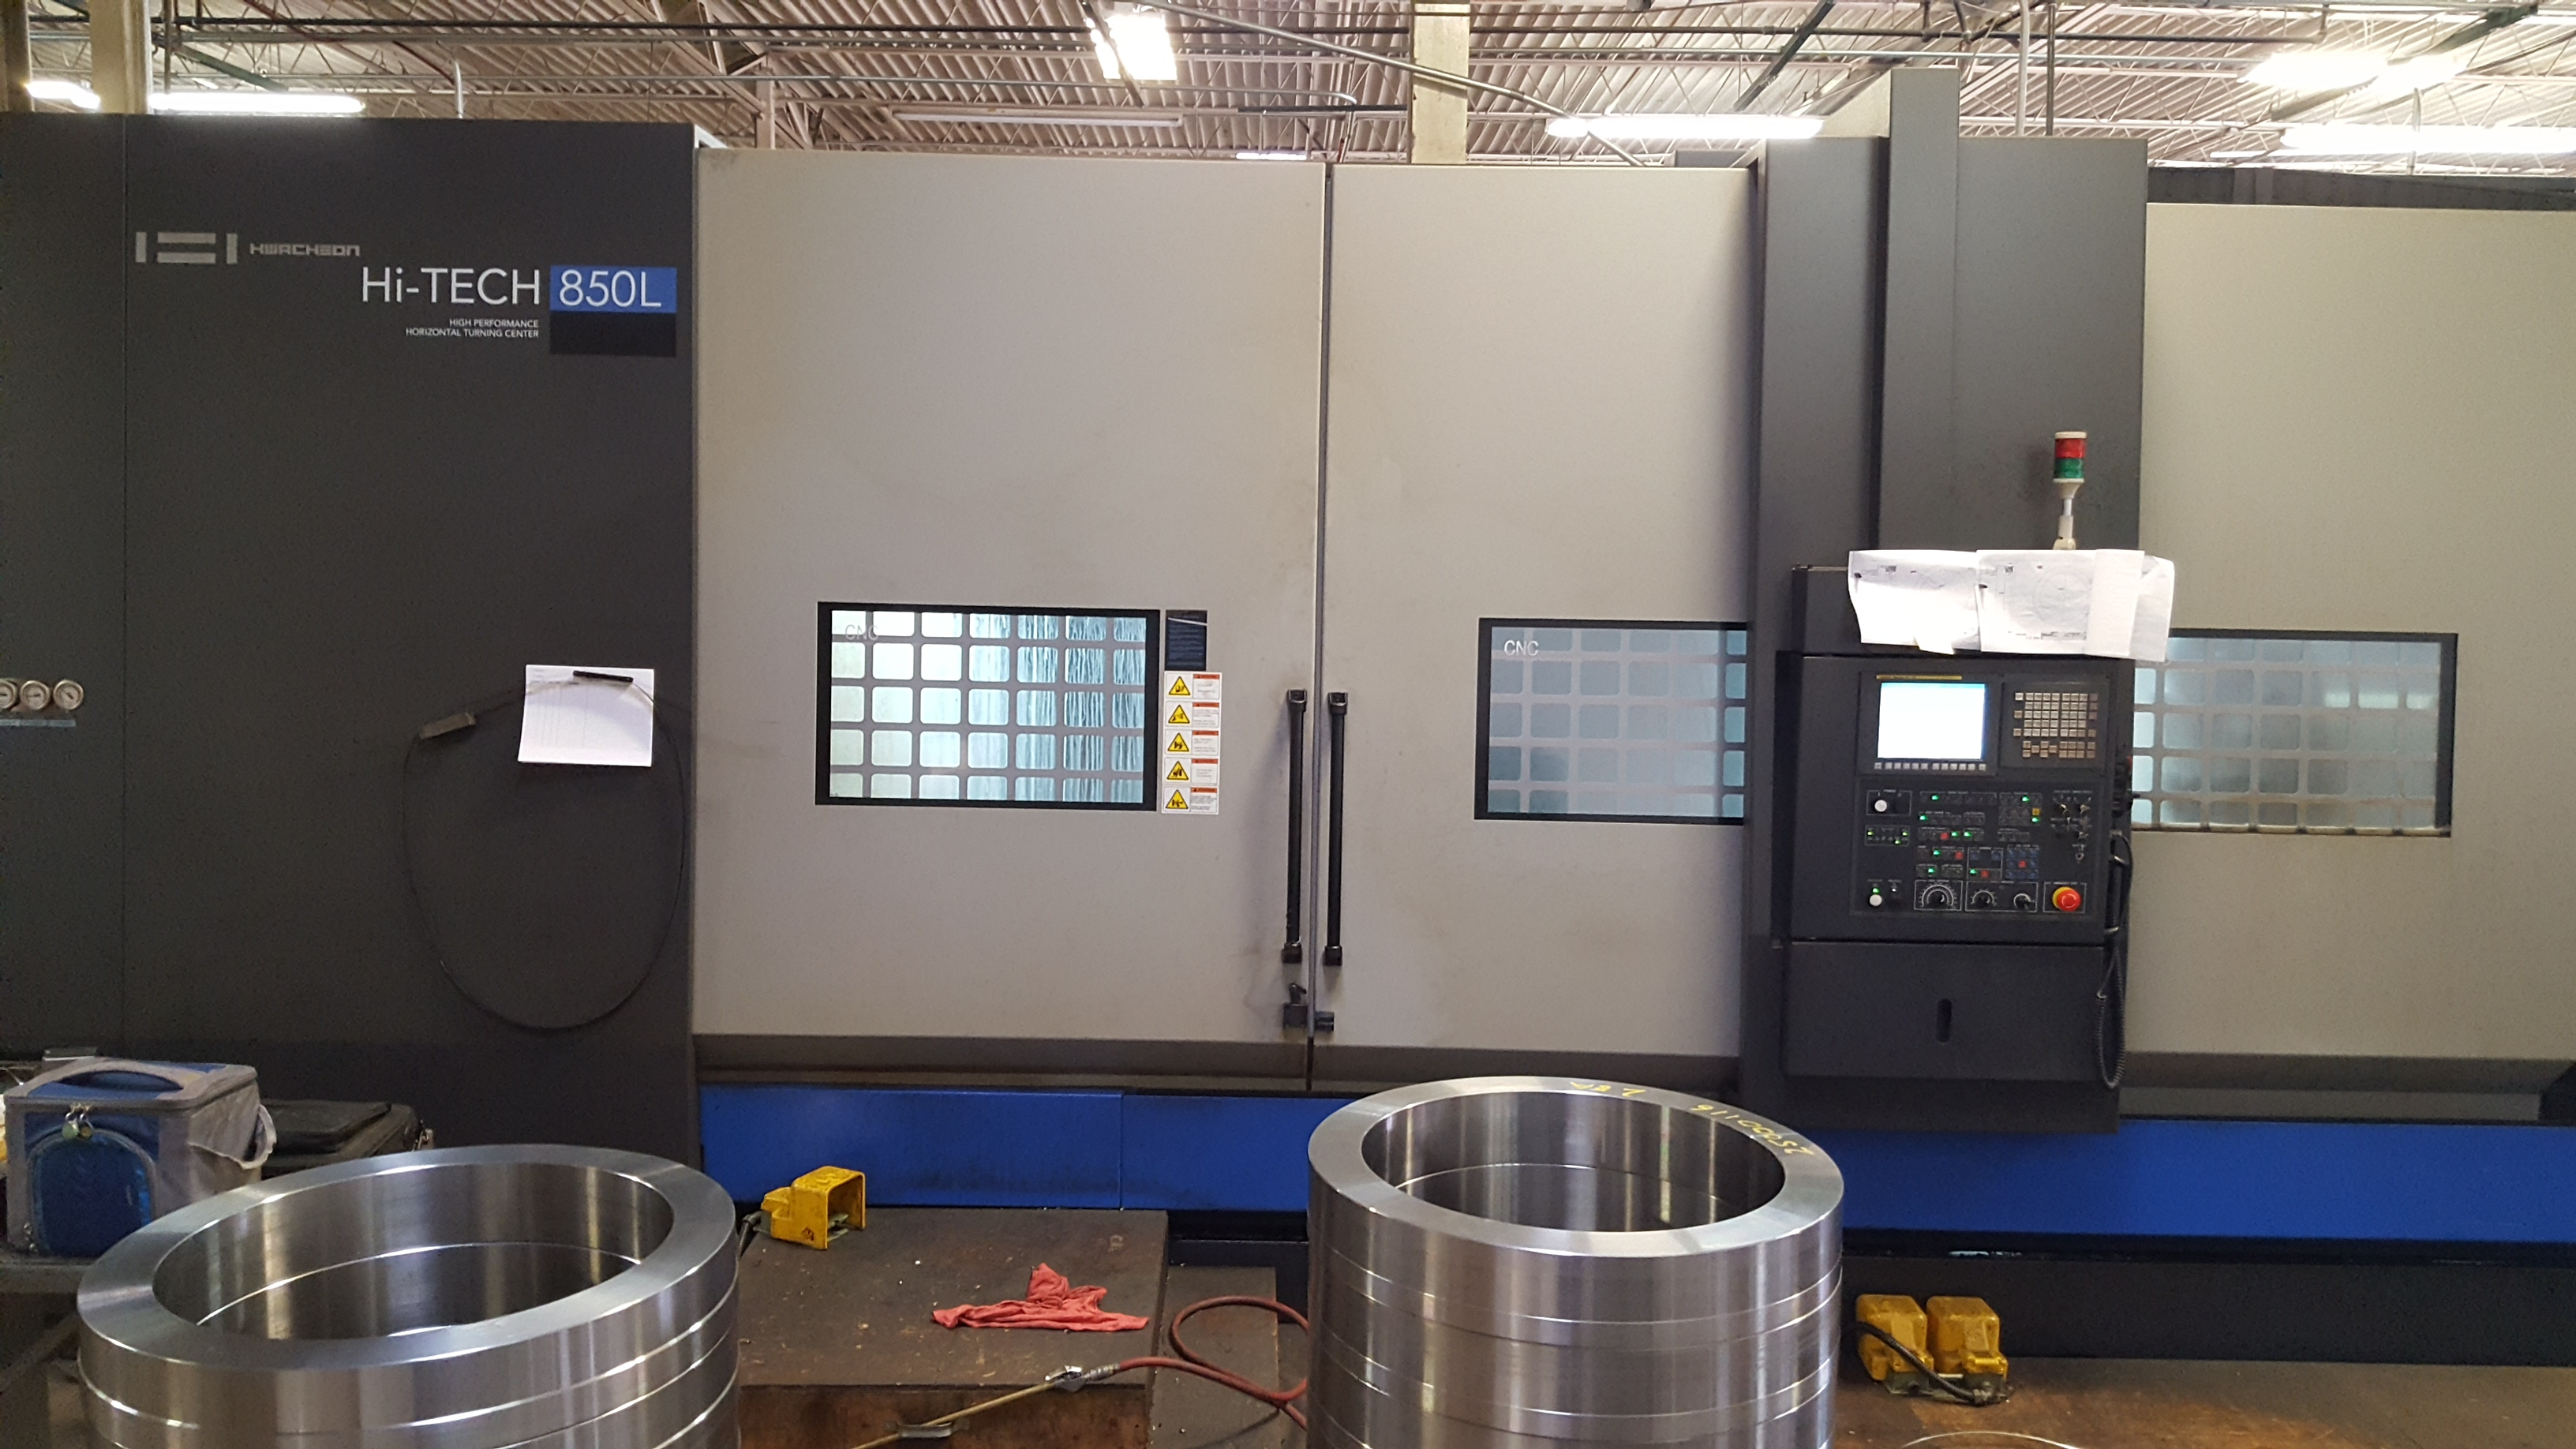 Hwacheon 850L